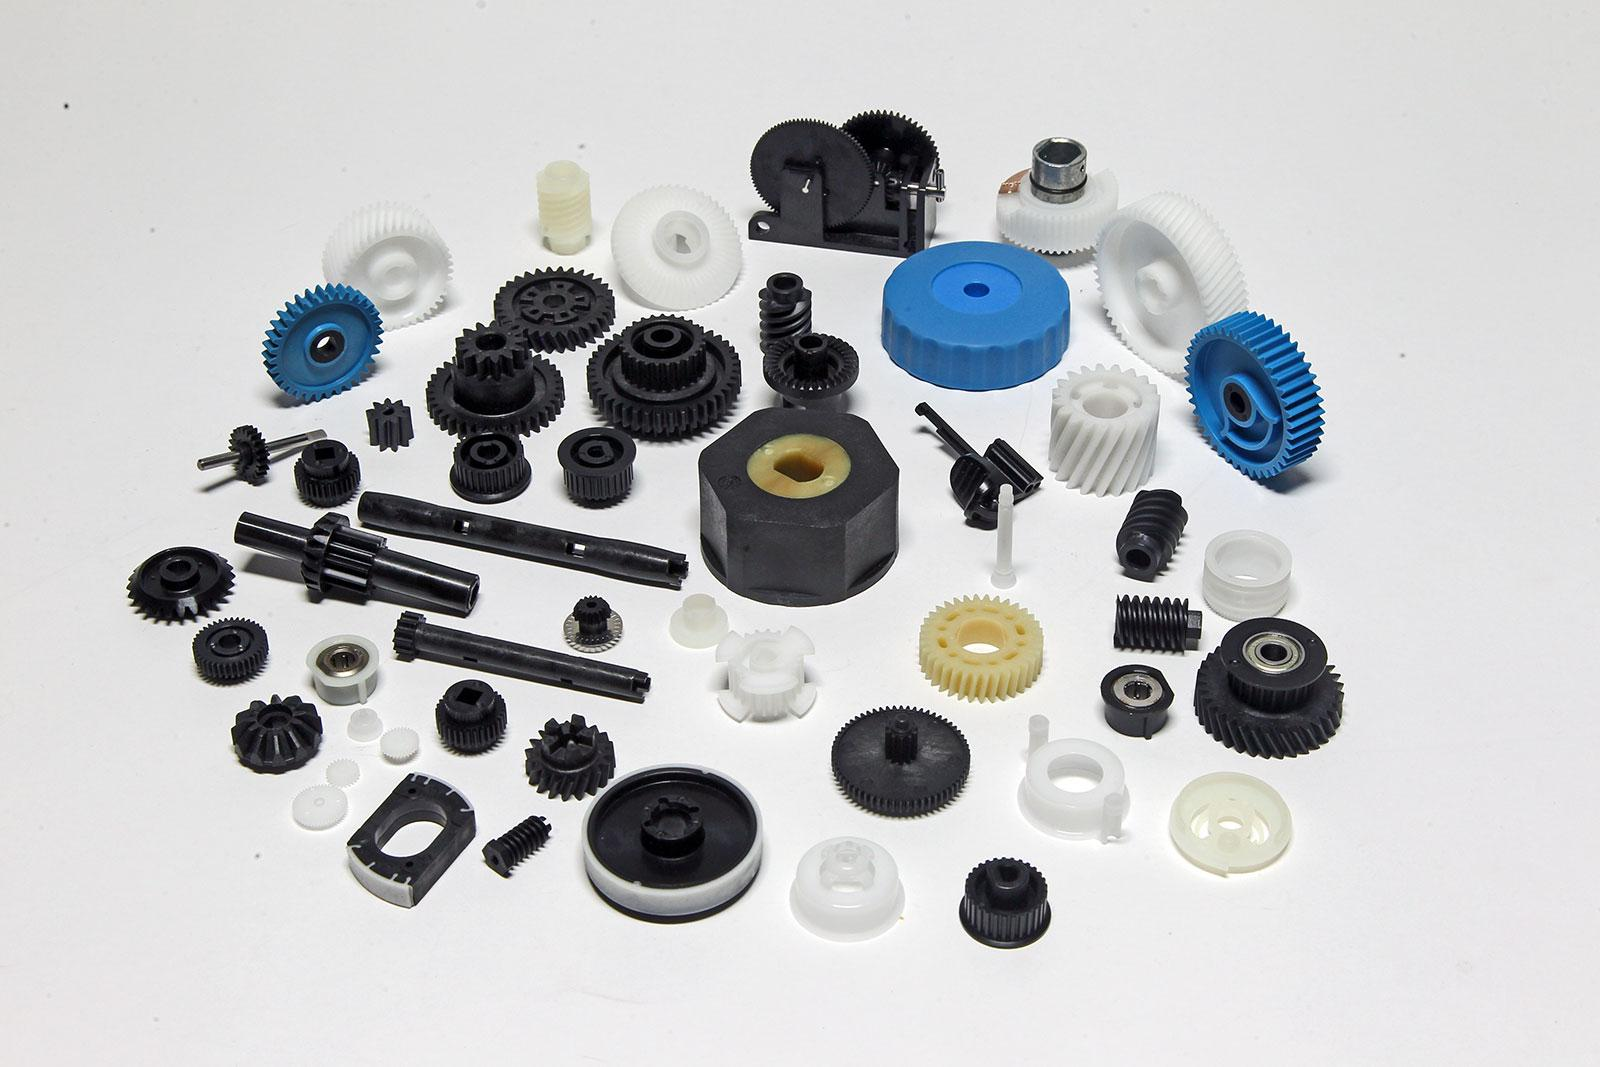 Seitz precision gear and drive components